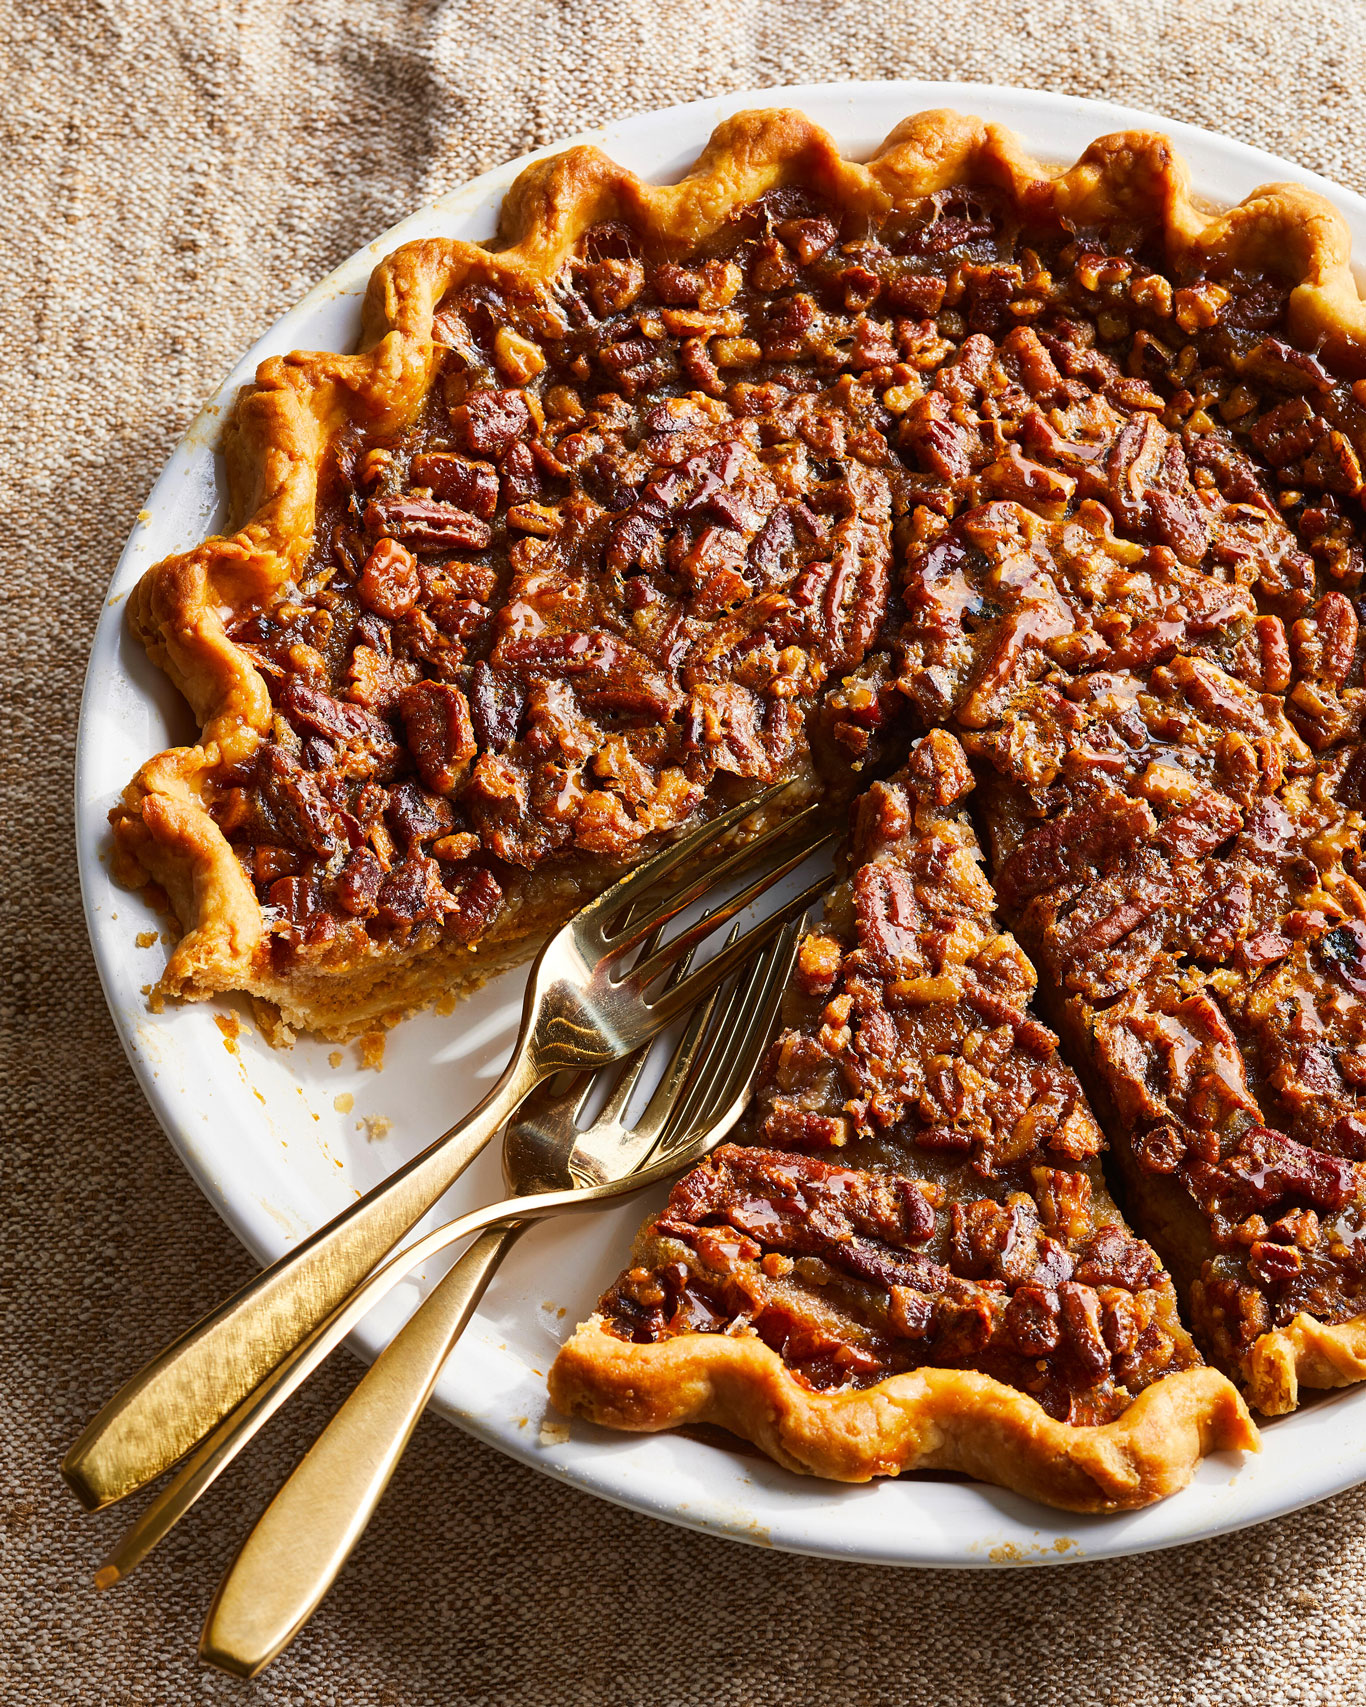 Pumpkin-Pecan Pie with slice removed and forks